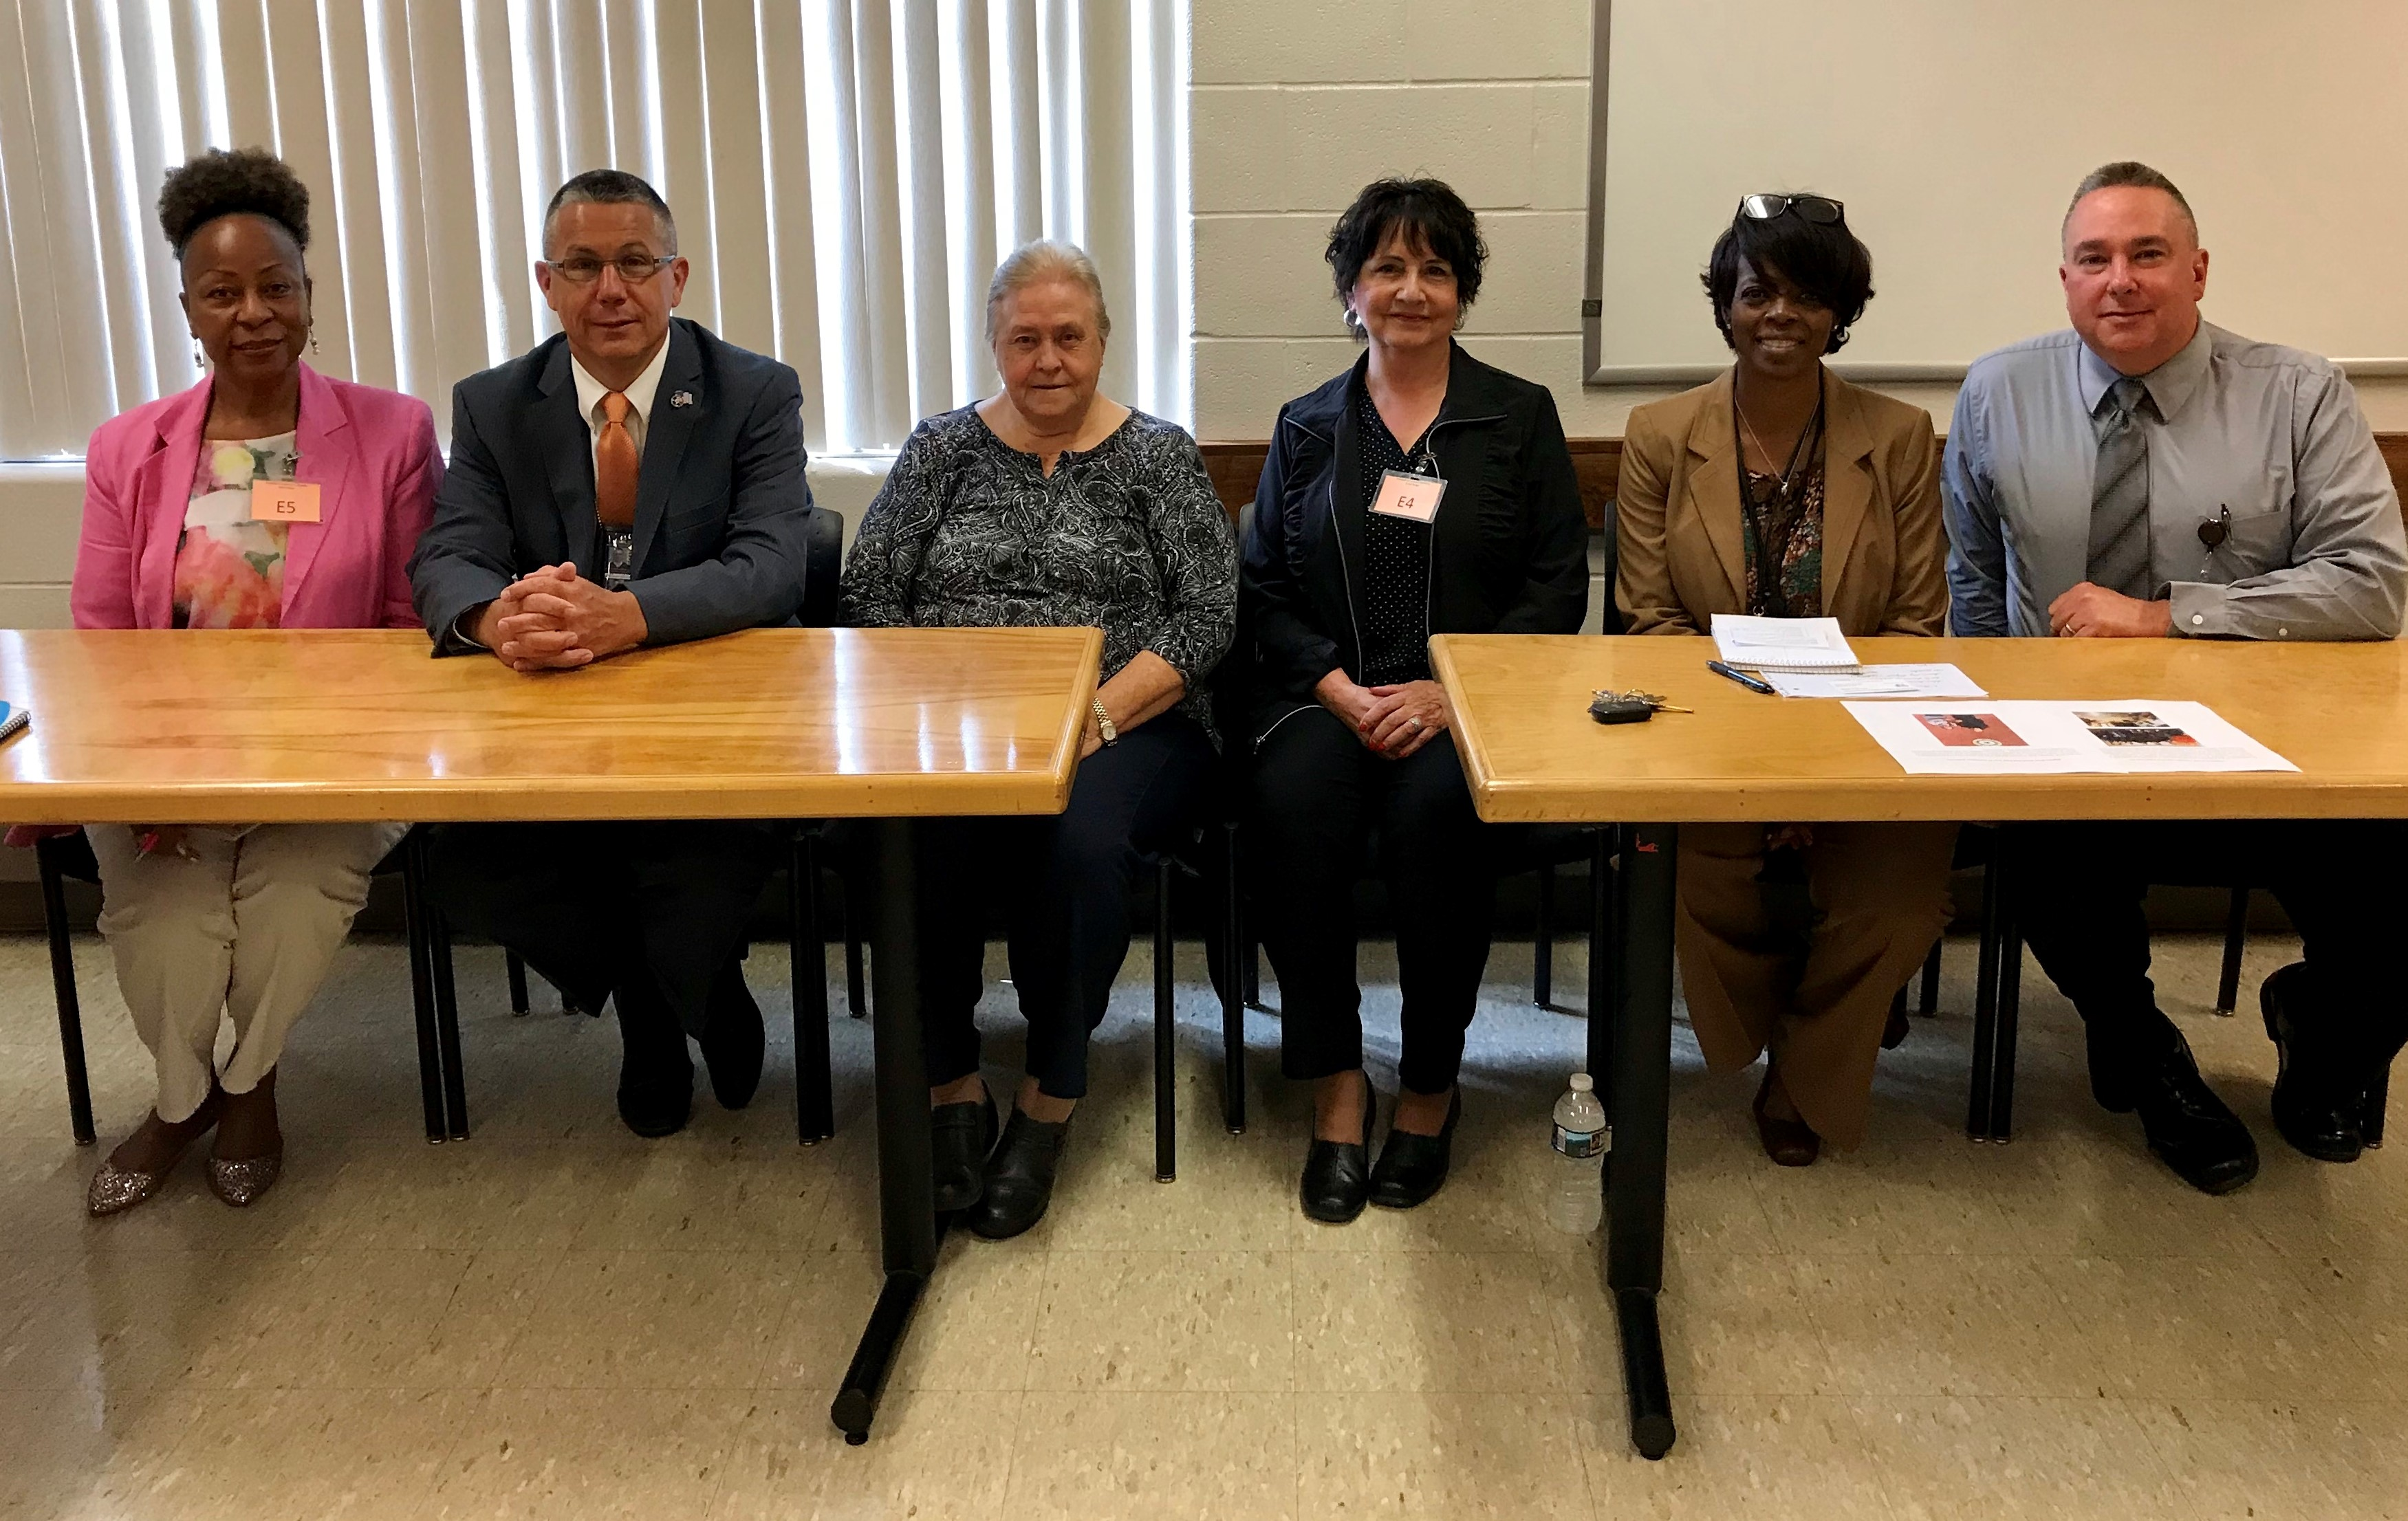 Trumbull Correctional Welcomes Community Advisory Committee